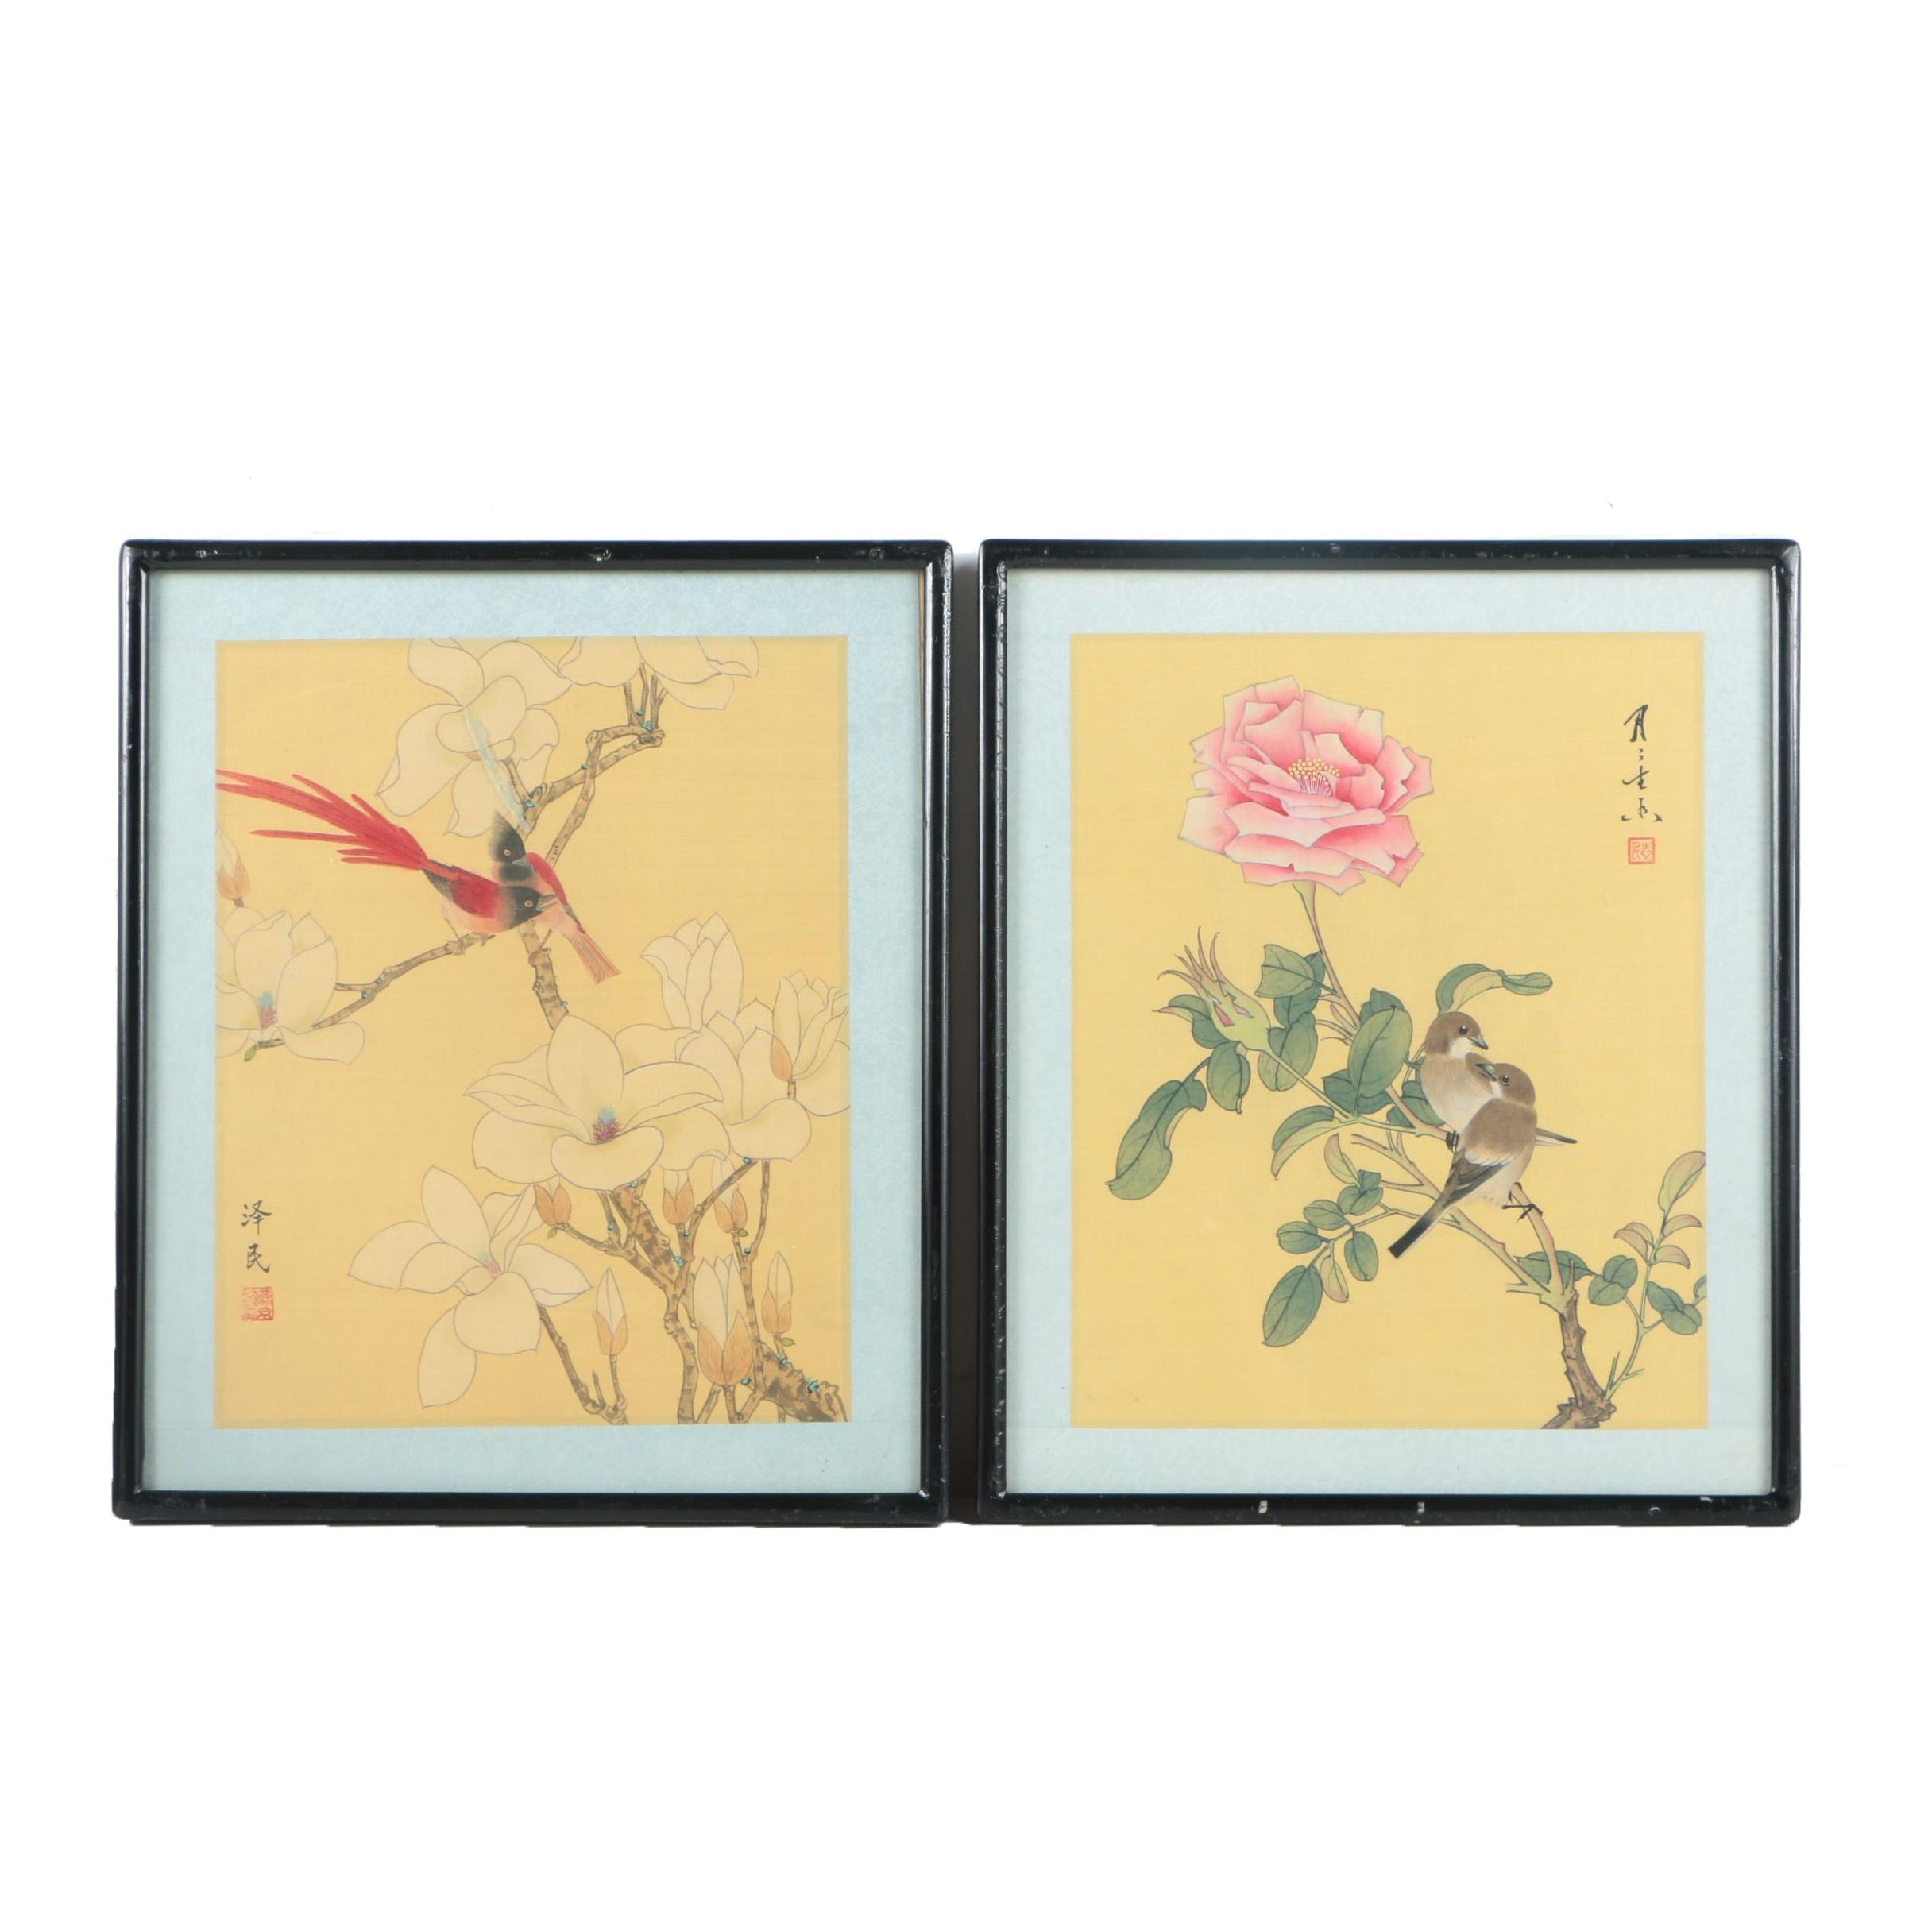 Two East Asian Watercolor Paintings on Silk of Birds in Flowering Bushes